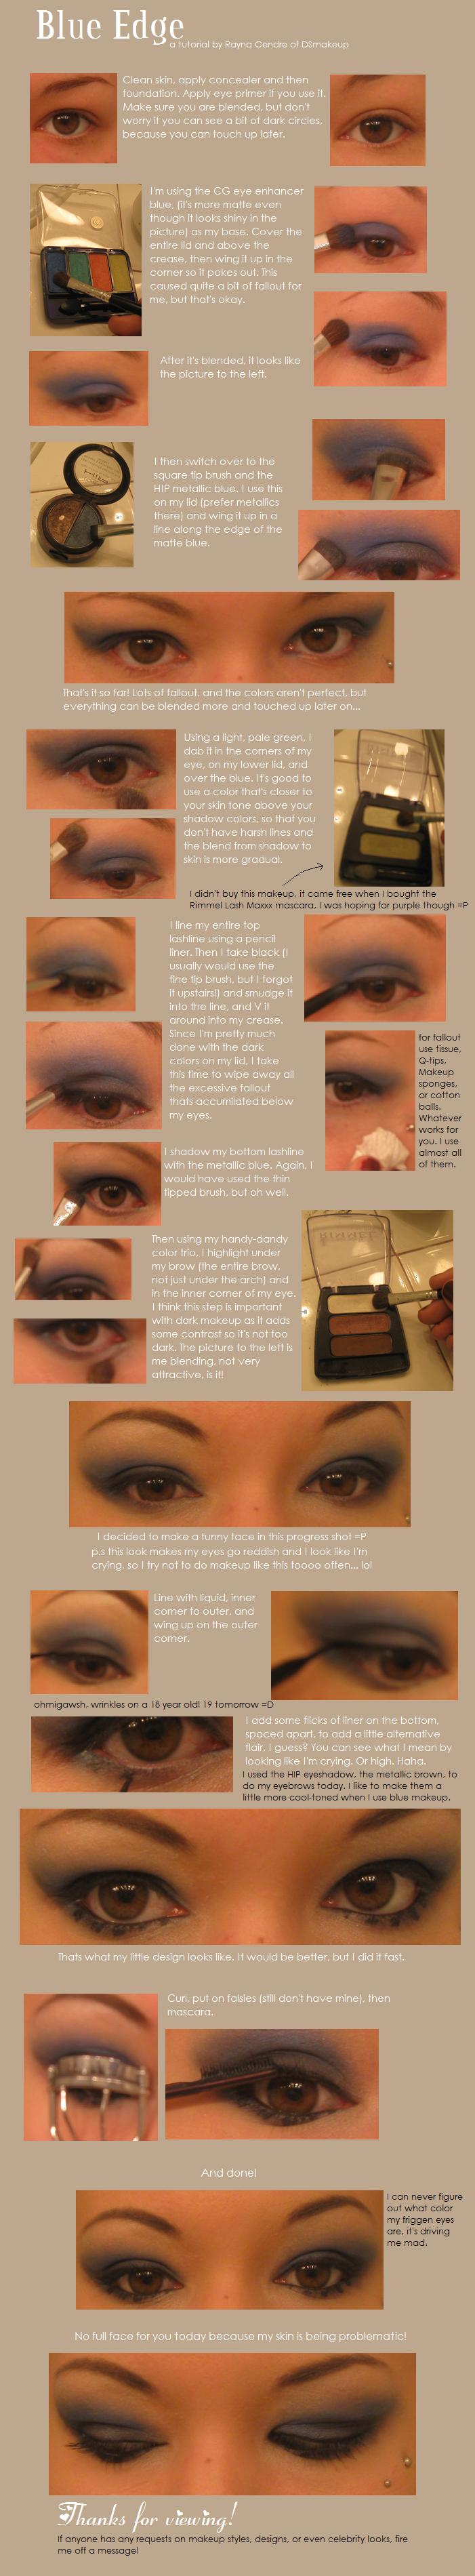 Blue Edge Makeup Tutorial by DSmakeup